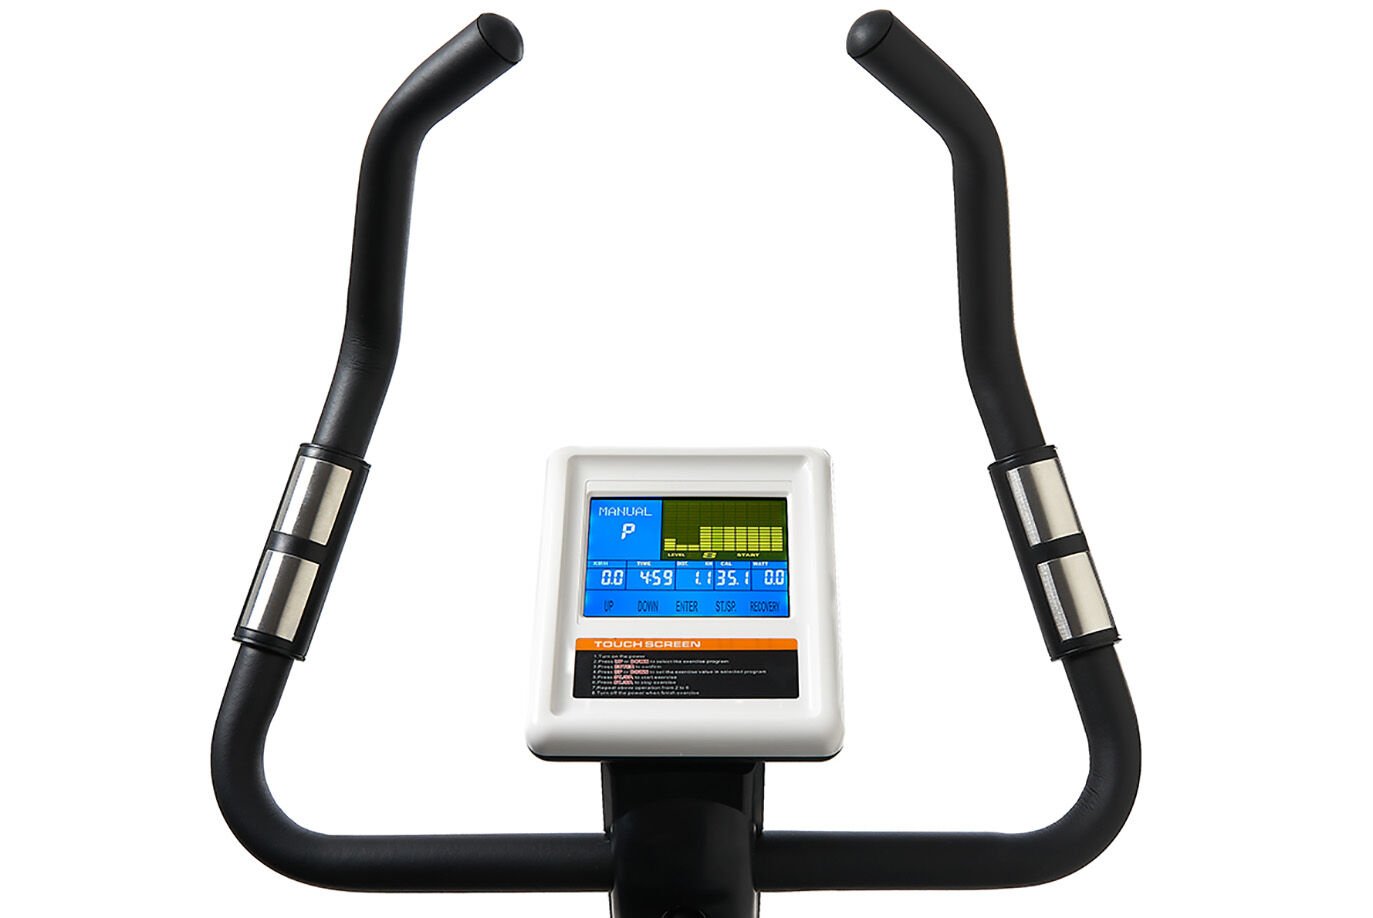 21 Fitness and Weight Loss Programs on Used Exercise Bike